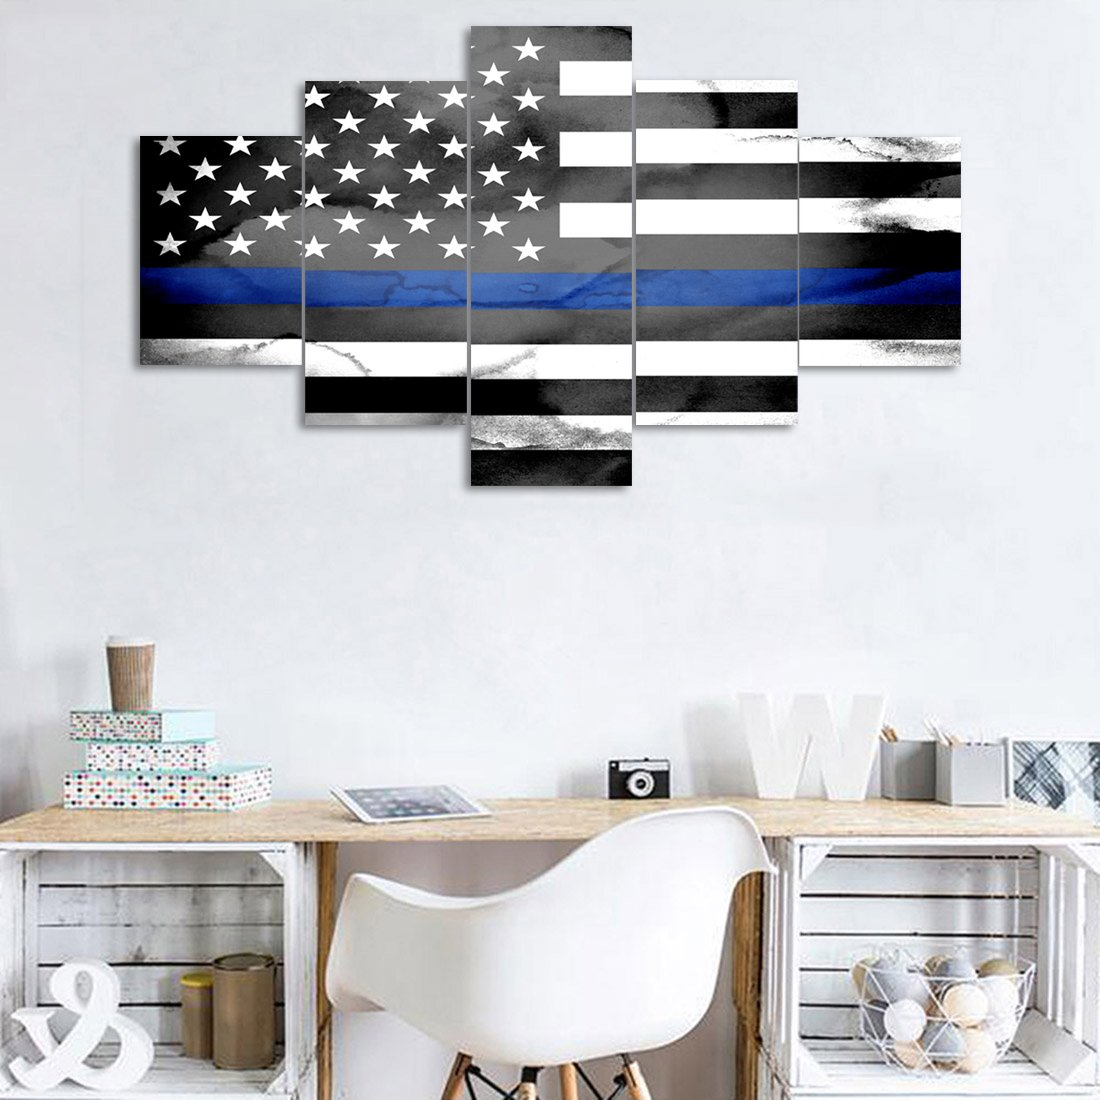 Paintings Yatsen Bridge 5 Panels Modern American Flag Art With Eagle Home Decor Rustic